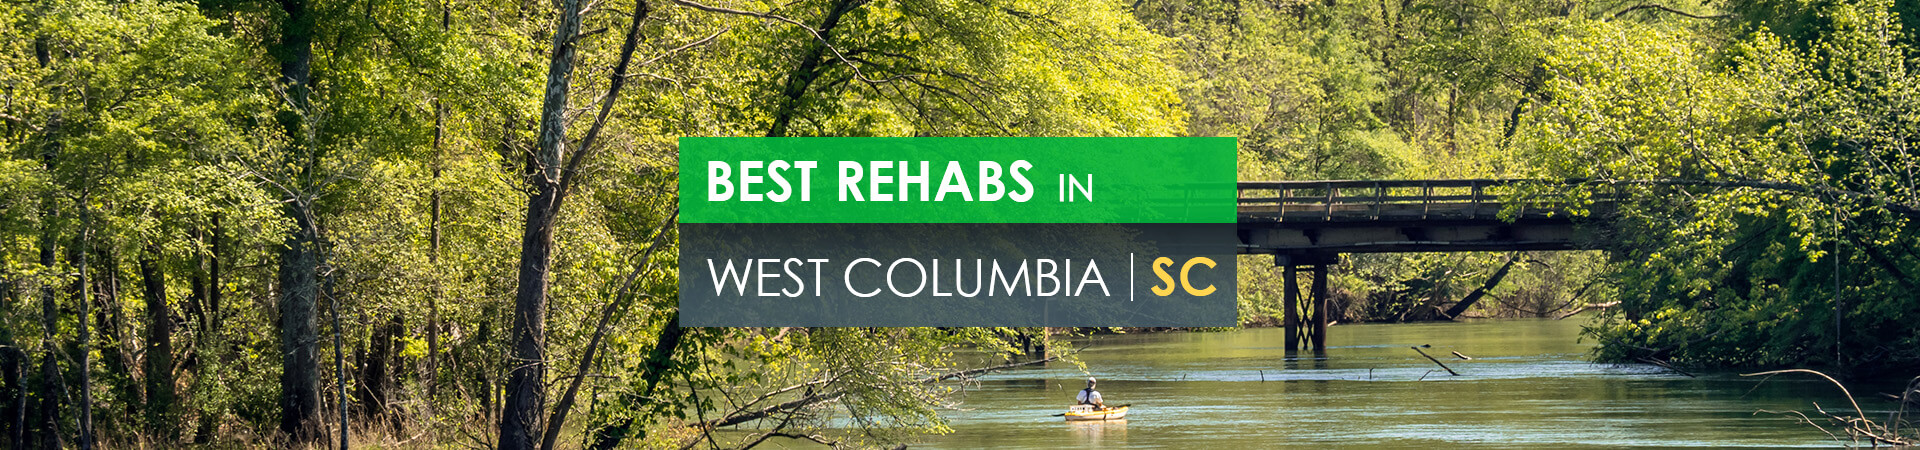 Best rehabs in West Columbia, SC